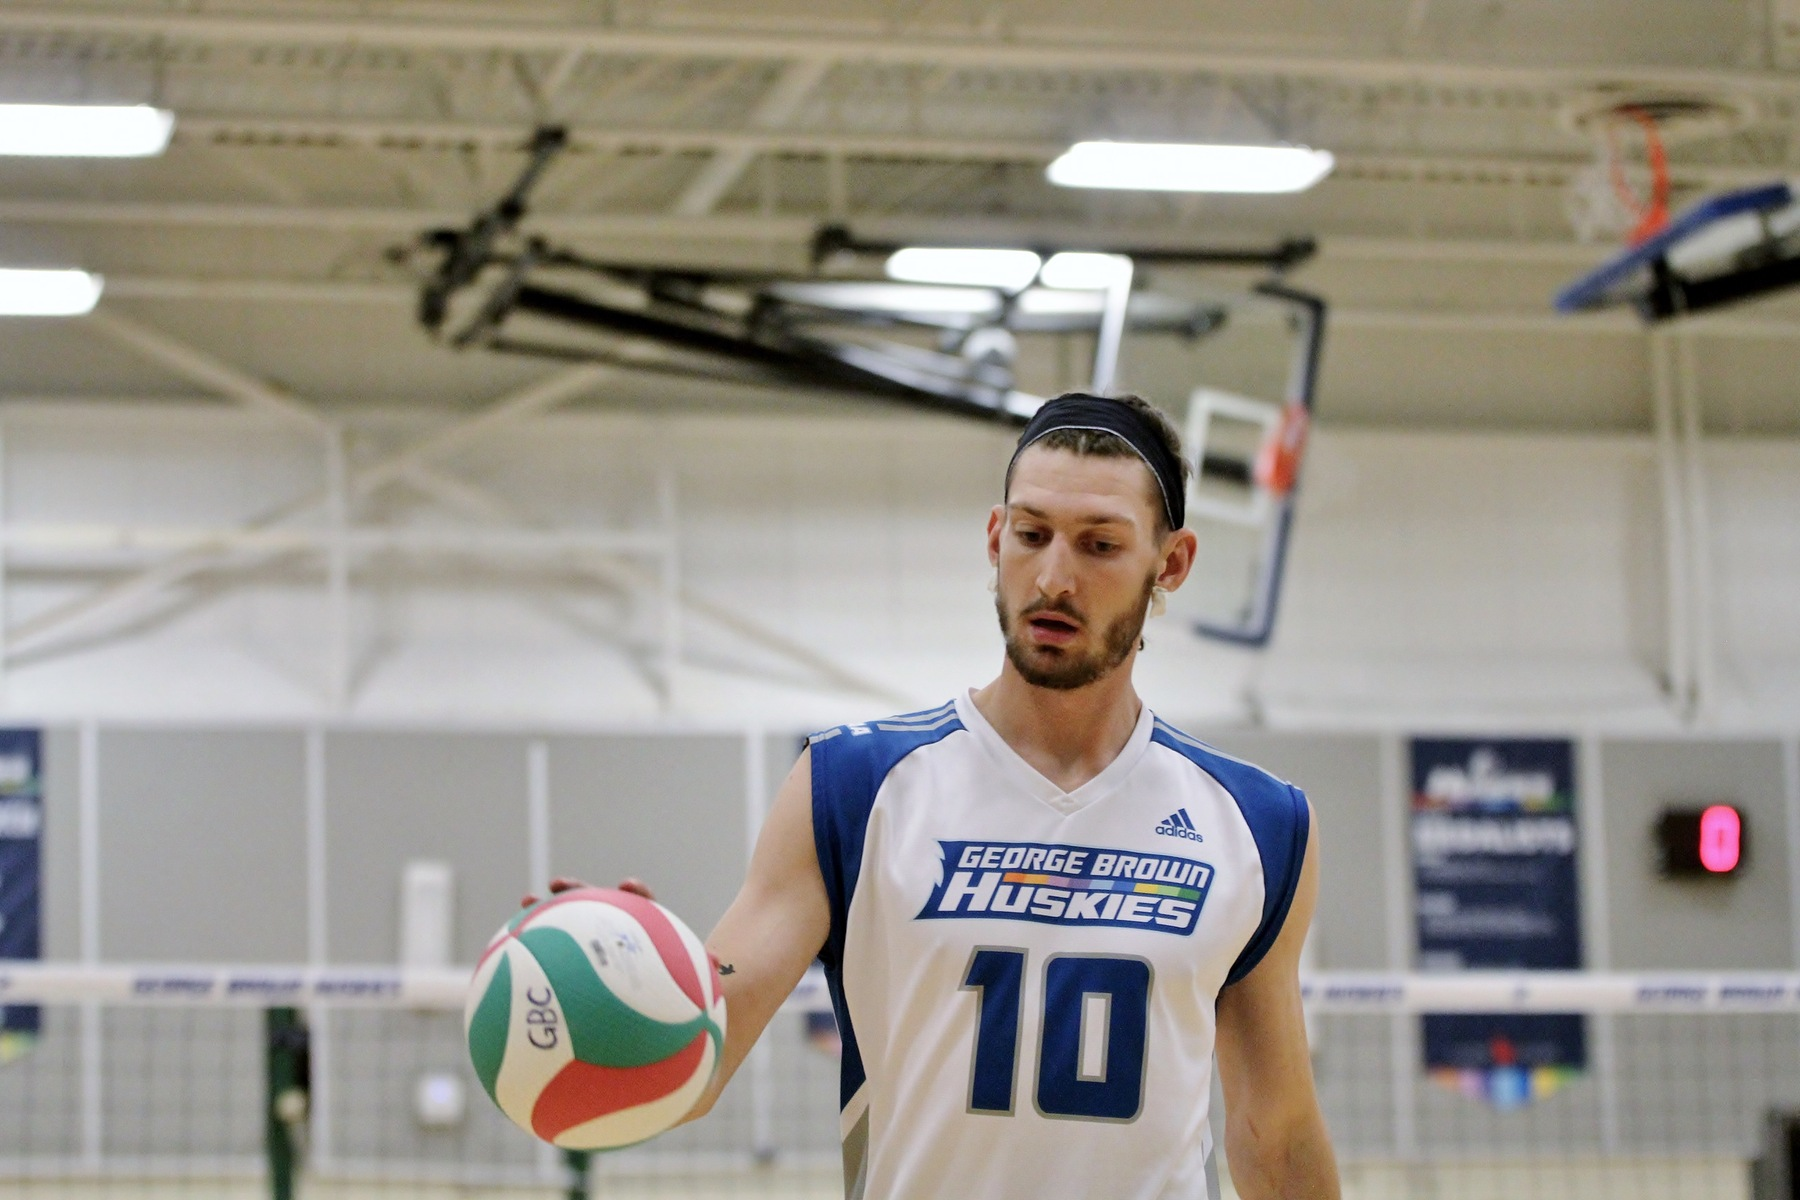 Men's volleyball player with ball in hand